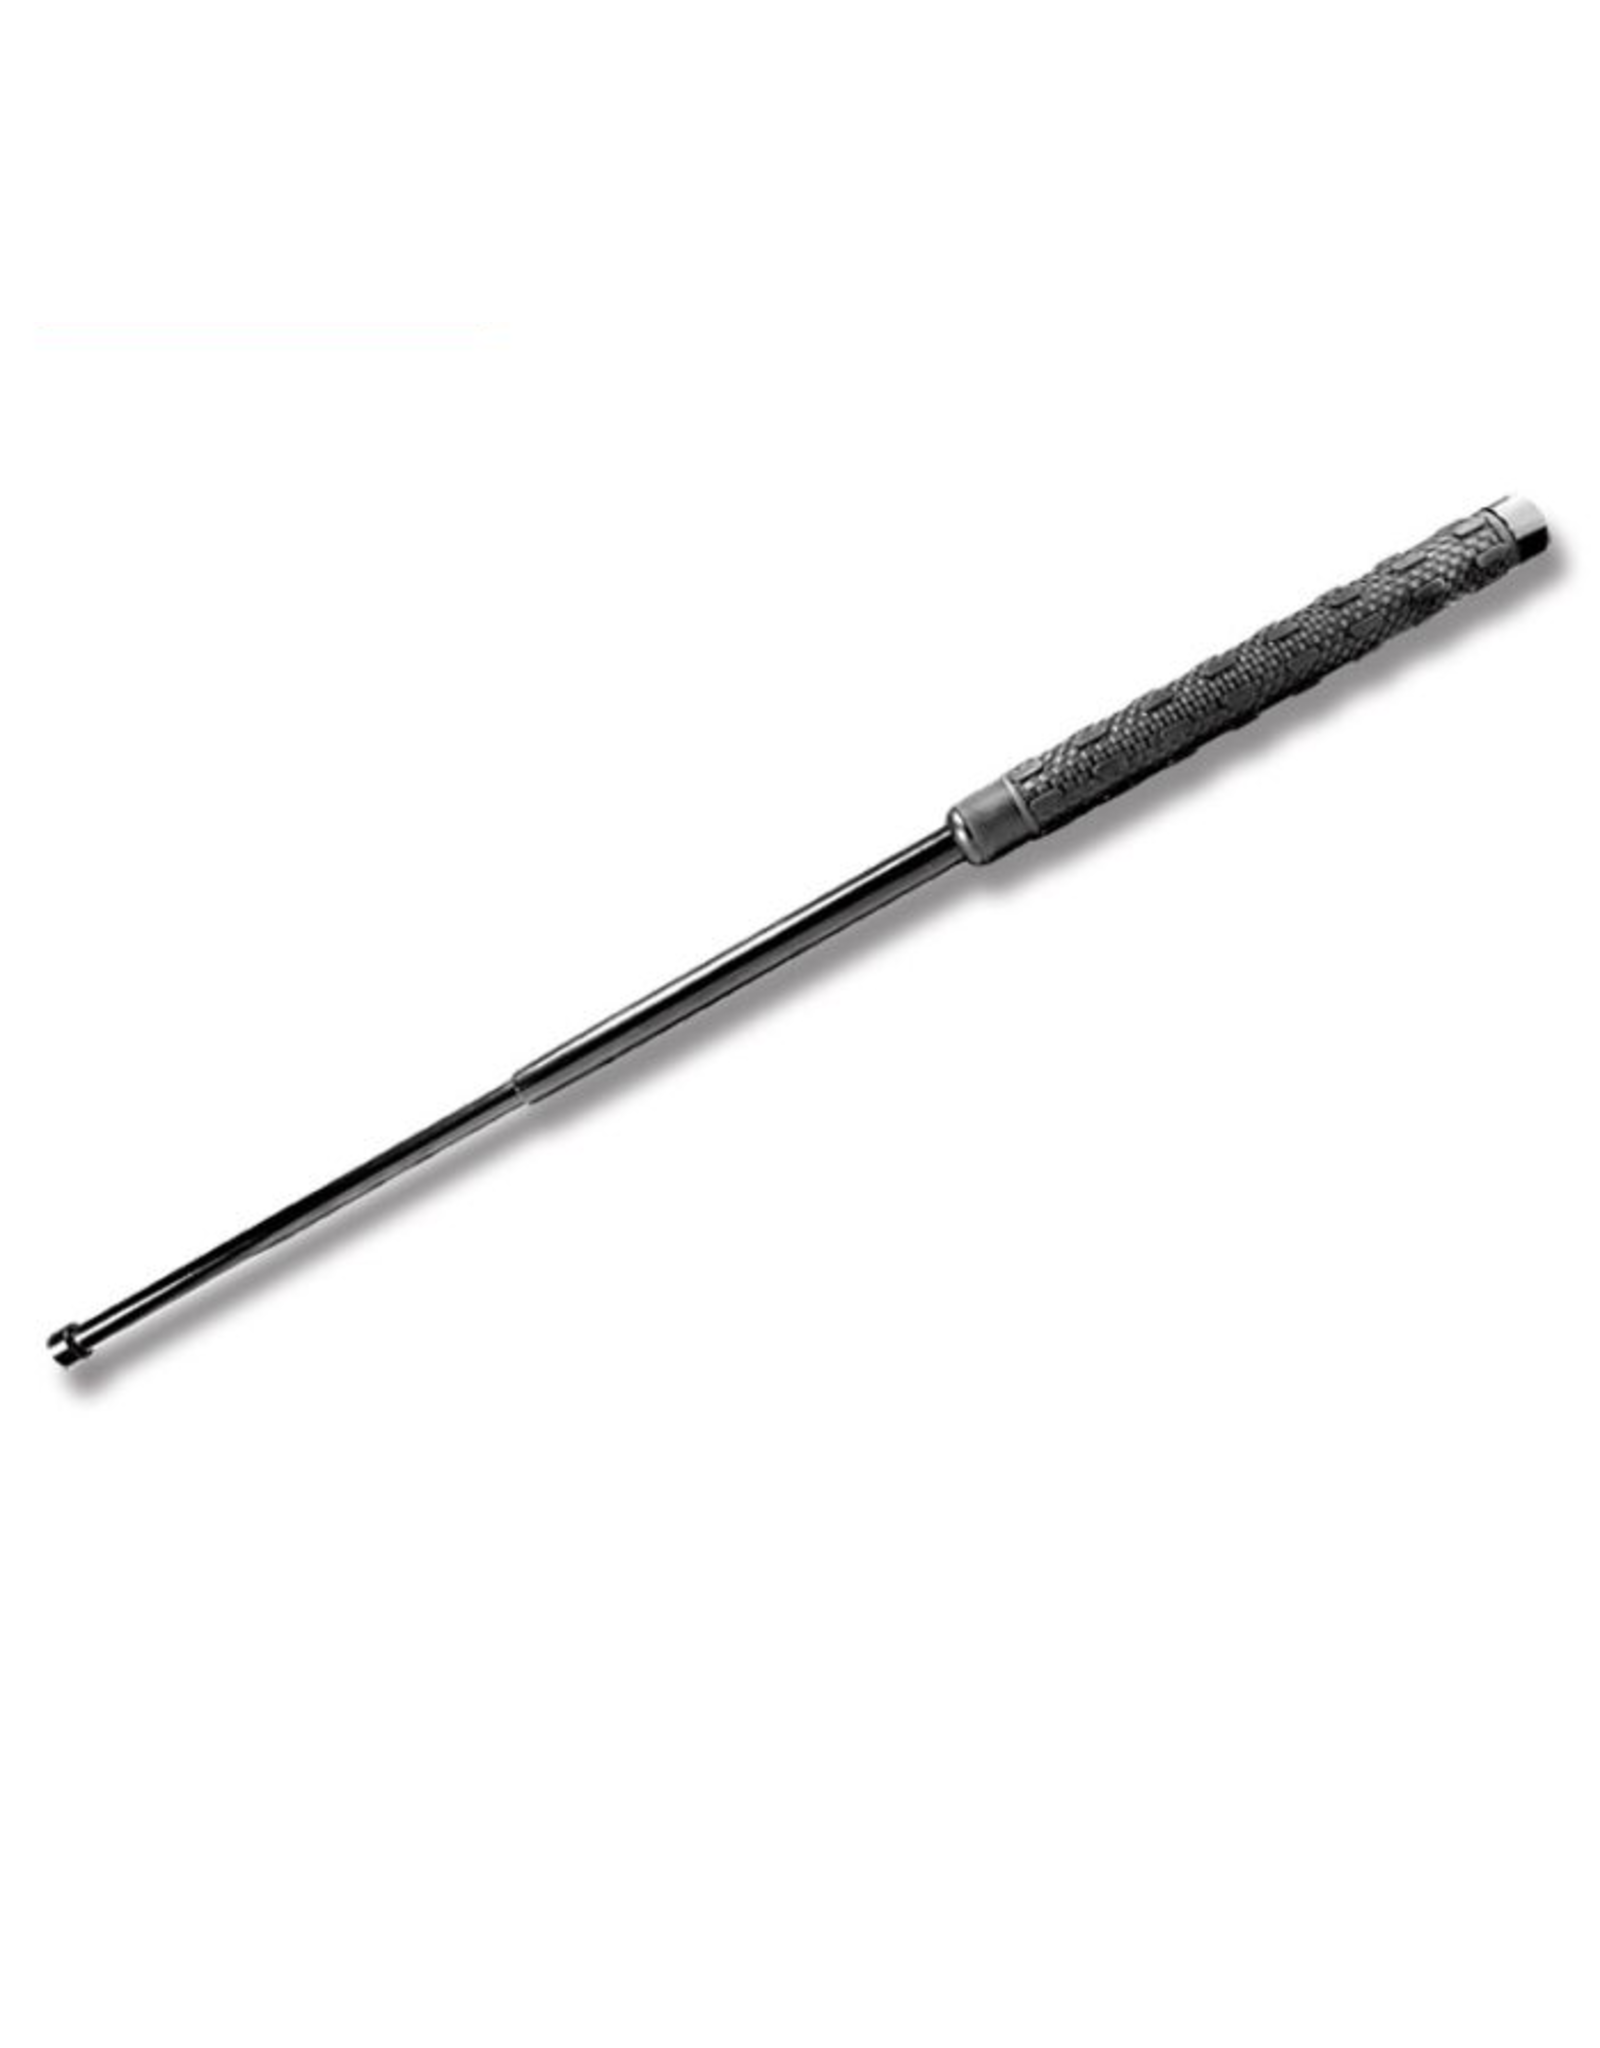 Smith & Wesson 24' Smith and Wesson Baton